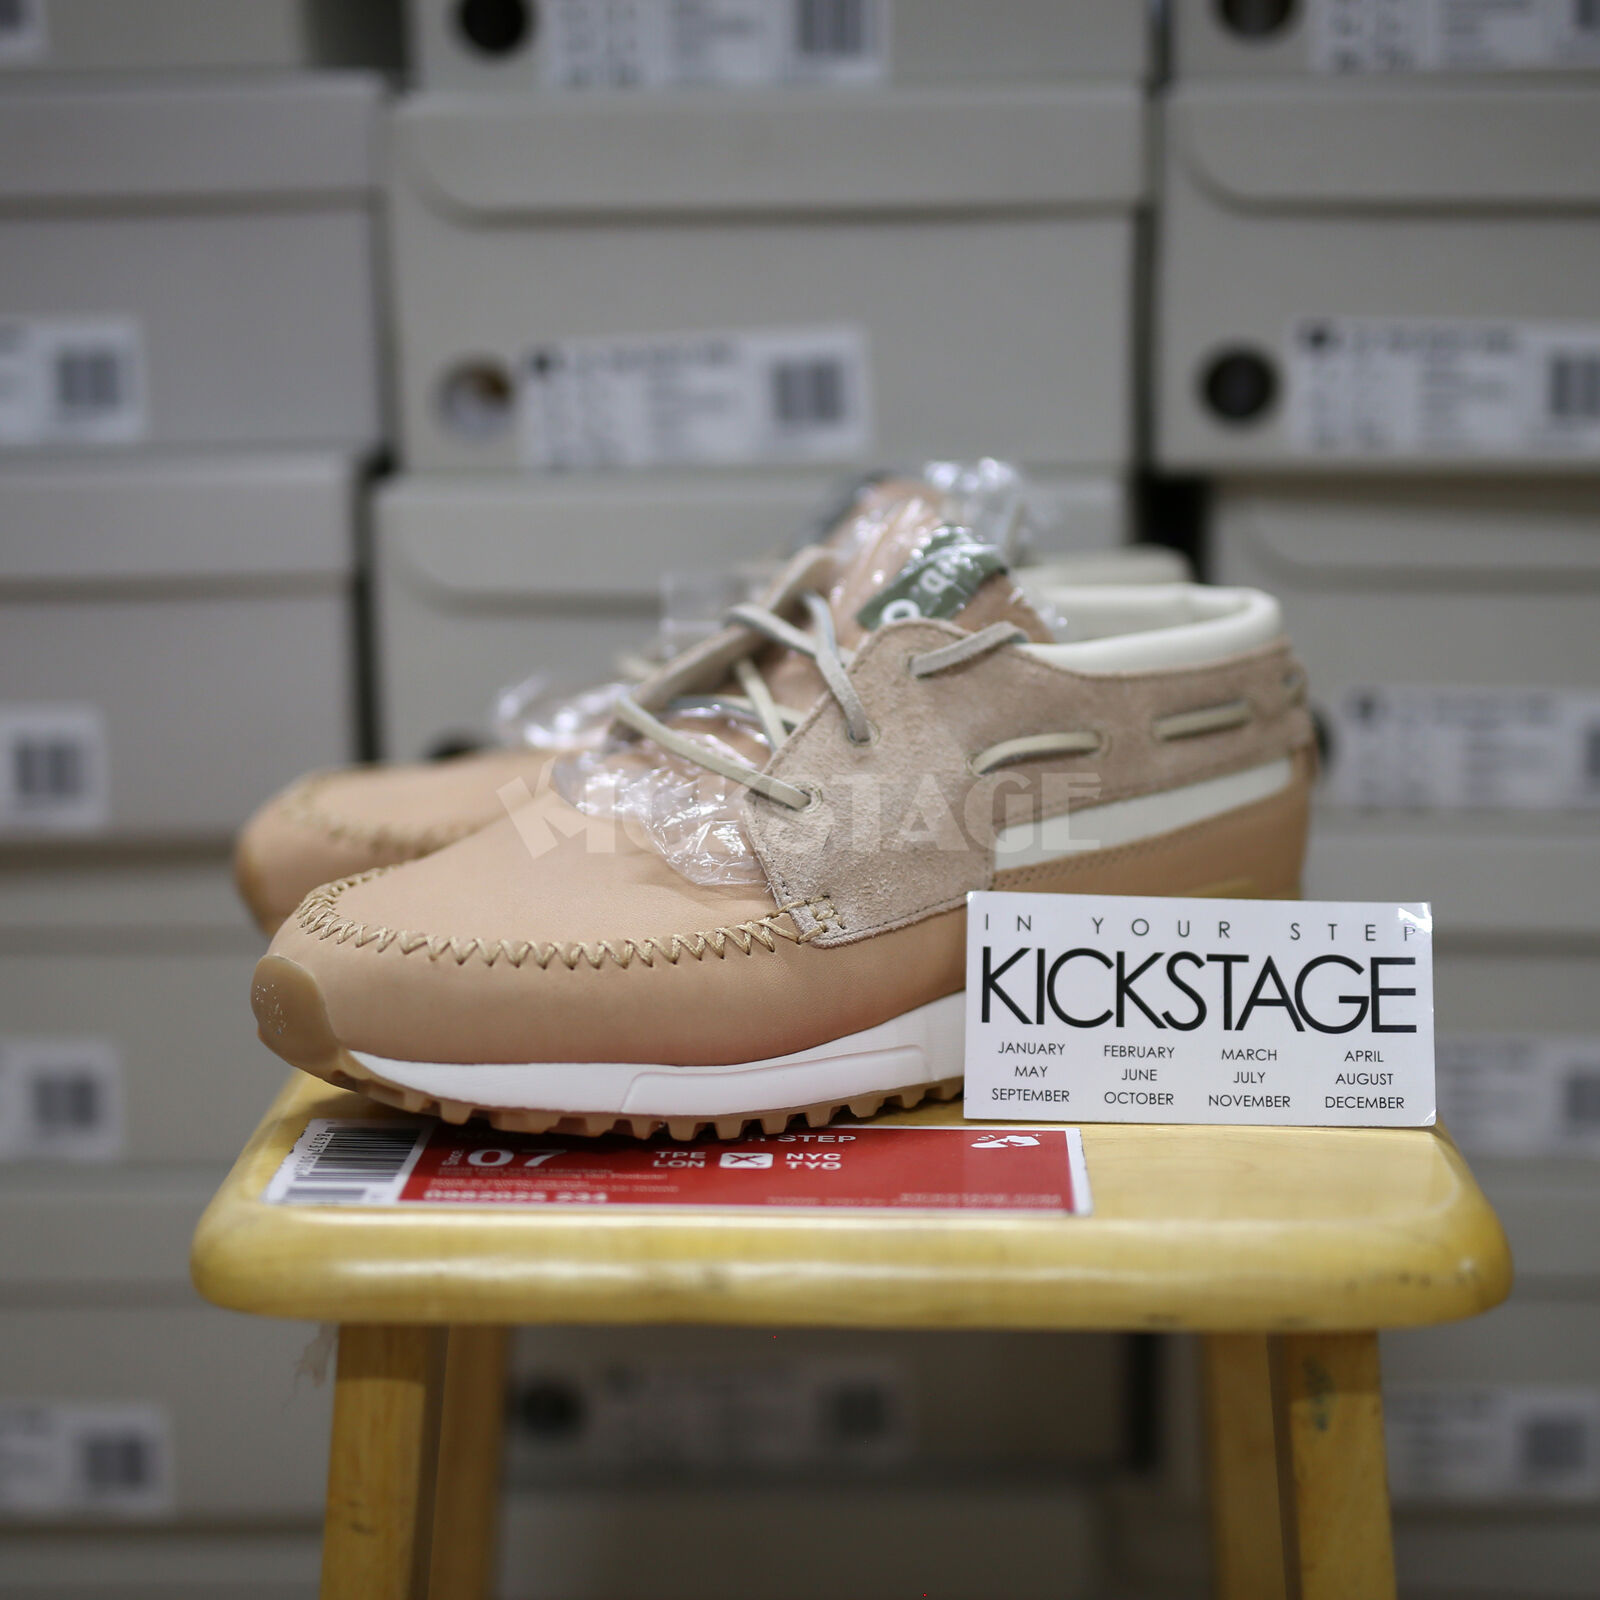 Adidas Consortium x END Clothing B39341 Zx 700 Boat Sneakers B39341 Clothing IN HAND SZ 7.5-10.5 3e6c96